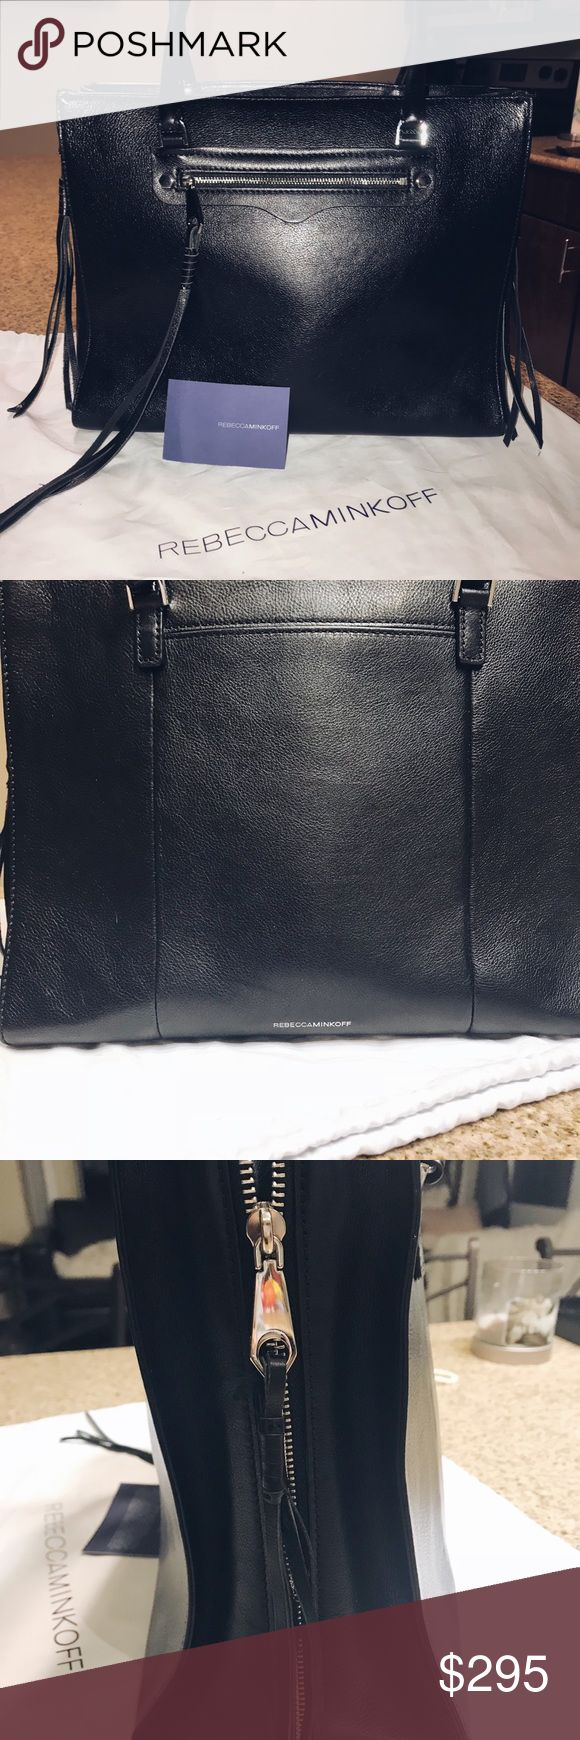 Authentic Rebecca Minkcoff Over the Shoulder Bag Light used, perfect condition Rebecca Minkcoff over the shoulder bag. Medium size. Authentication card and dust bag included. Rebecca Minkoff Bags Shoulder Bags